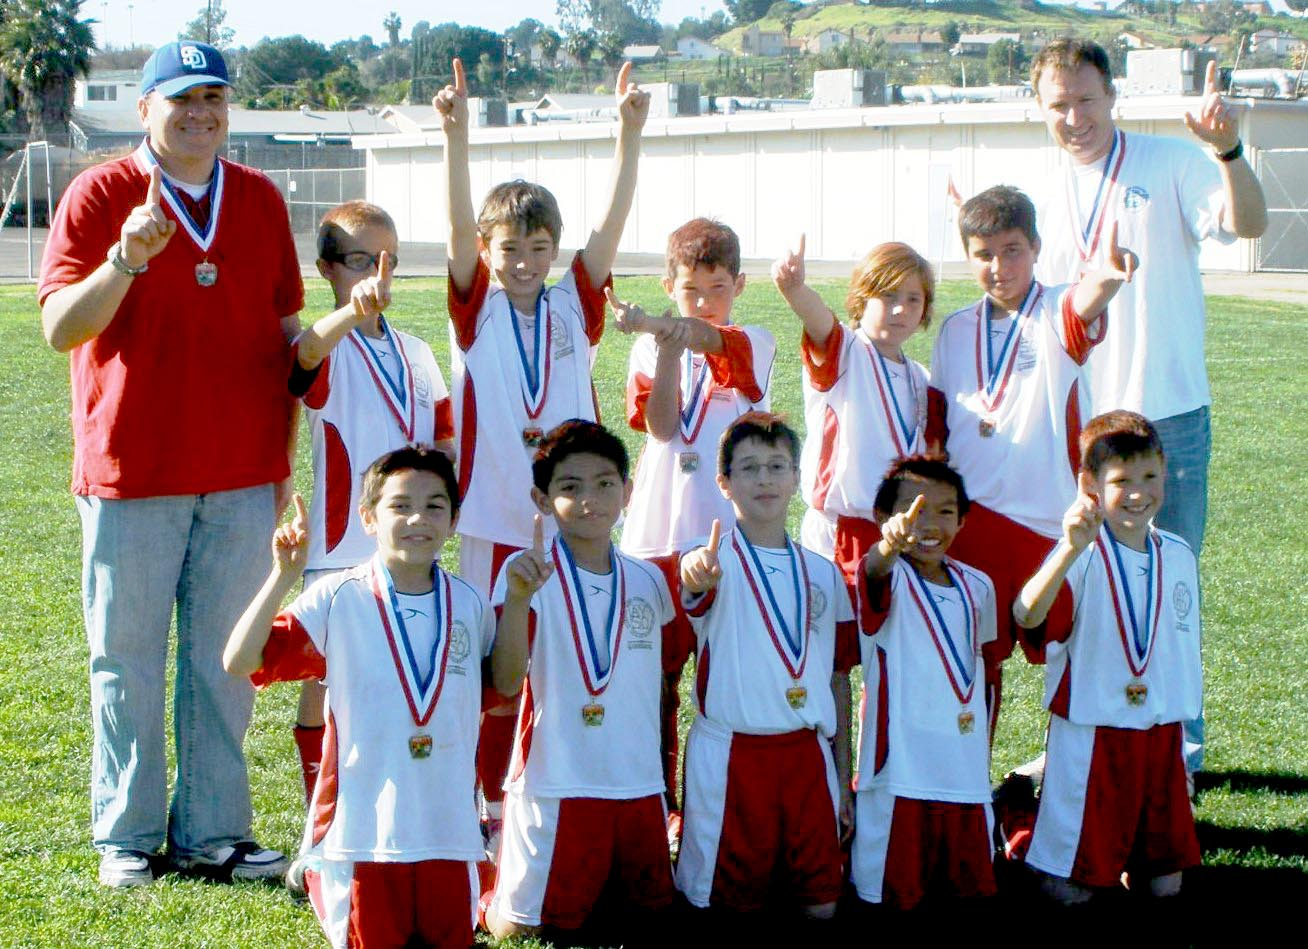 AYSO U10 All Star Tournament took place on January 15, 2011 and the ...